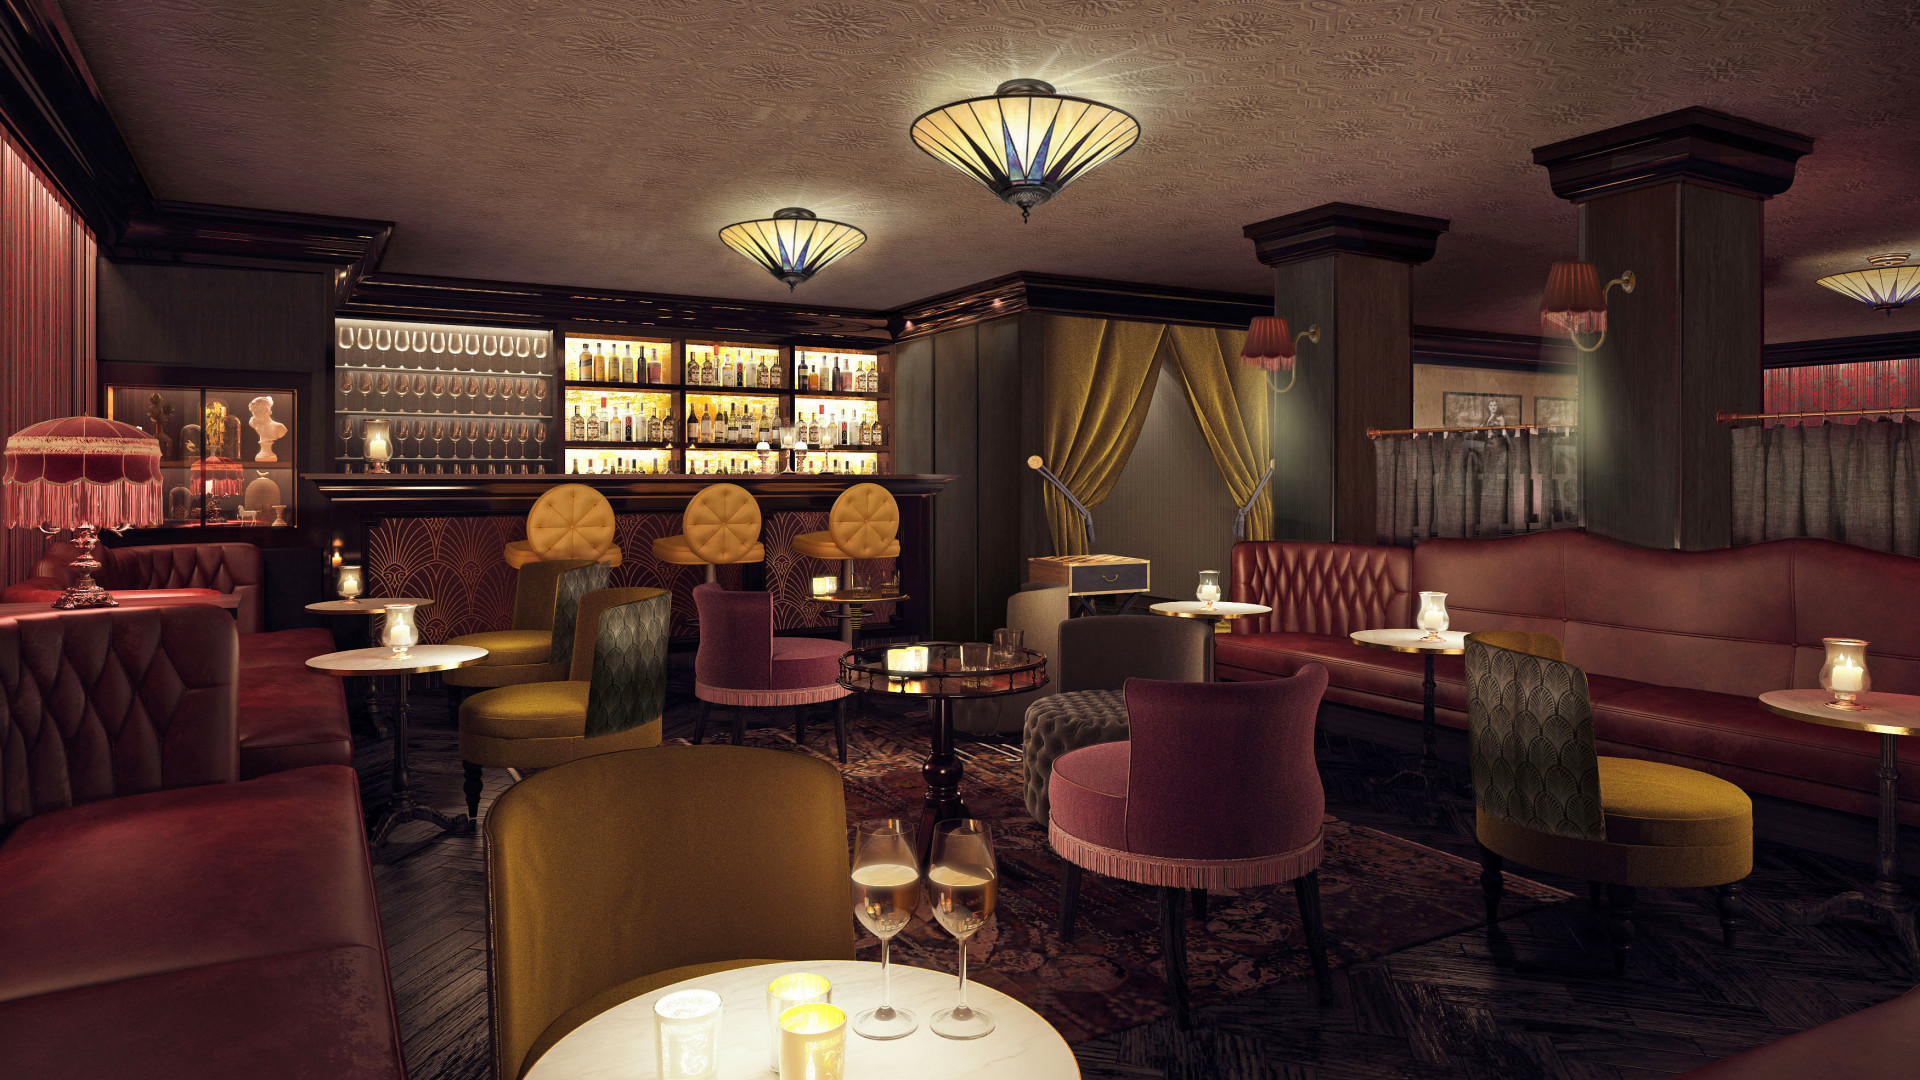 DND, the speakeasy-style bar at new City hotel Vintry & Mercer